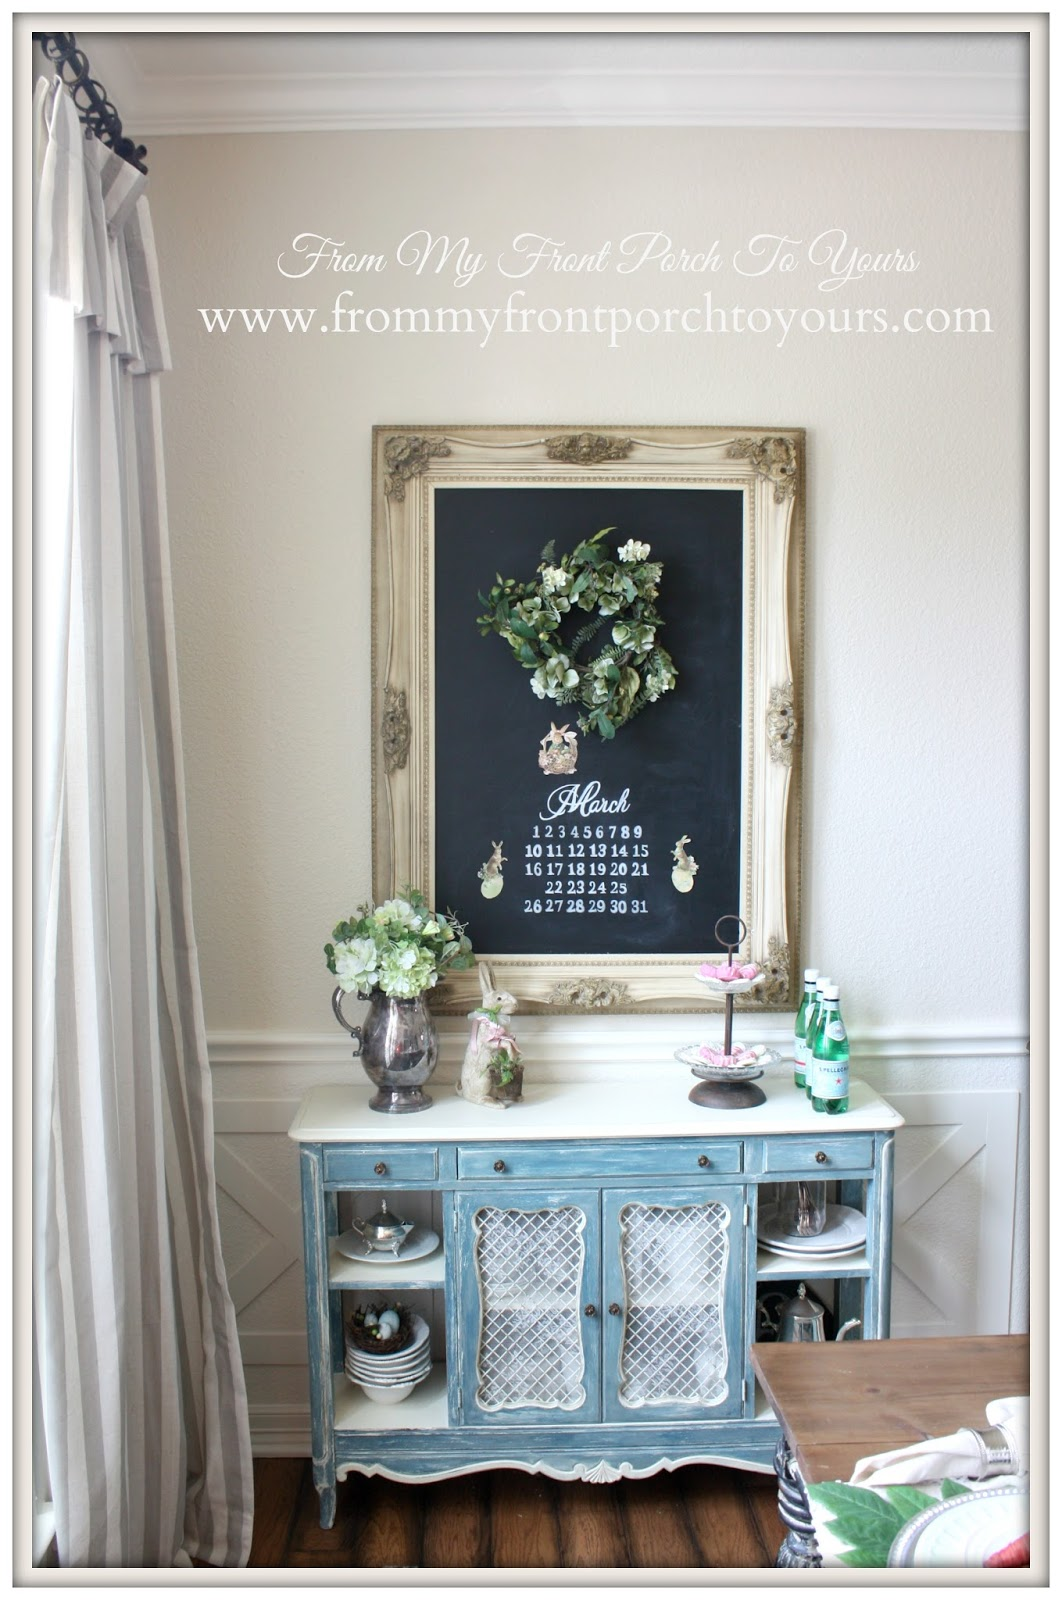 Spring Dining Room ChalkboardFrench Farmhouse Easter Dining Room- From My Front Porch To Yours